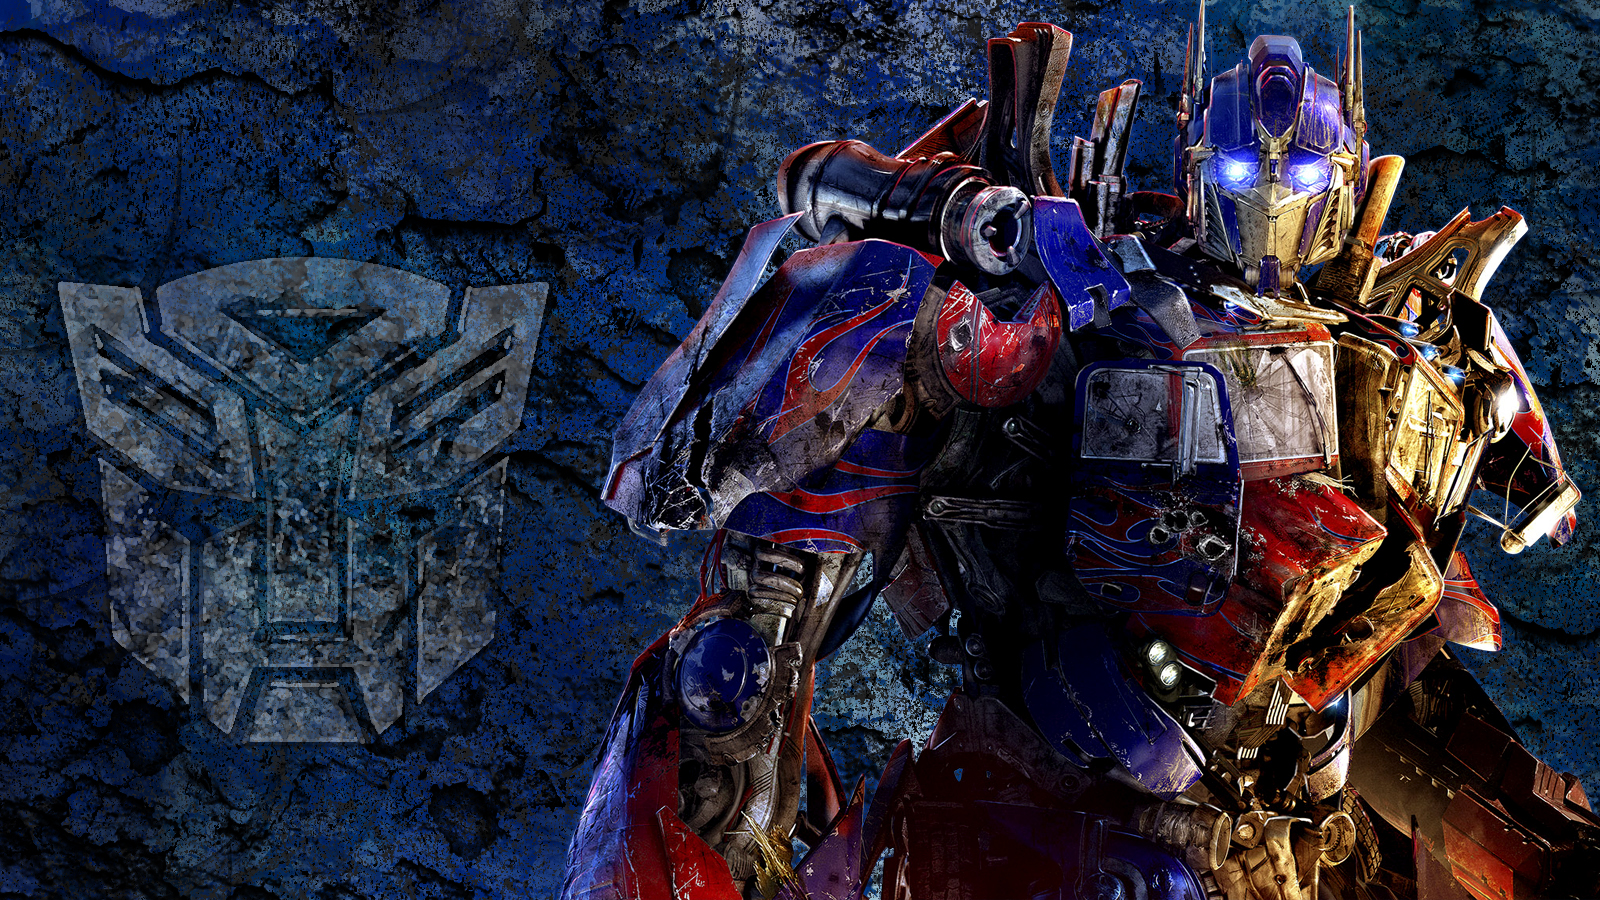 Optimus Prime WP by JibaDesign Optimus Prime WP by JibaDesign